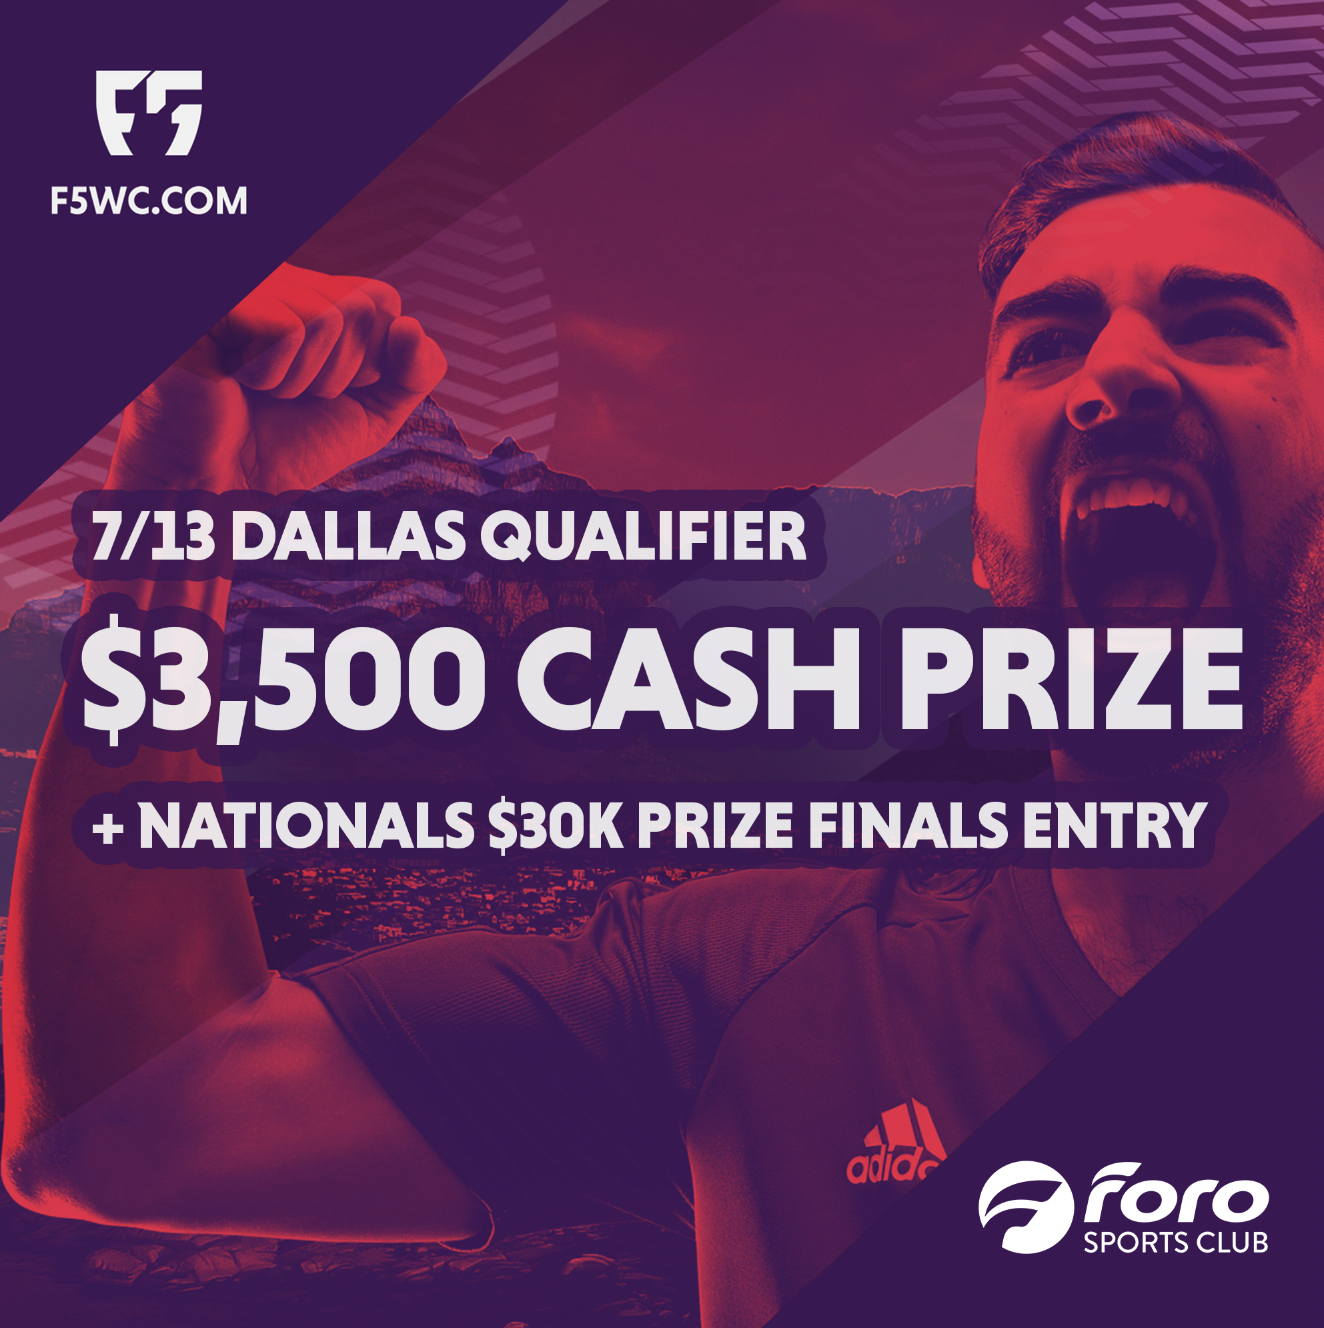 F5USA Dallas Qualifier - July 13th at Foro! 9AM-6PMMen's Adult 5v5Minimum age: 16 years oldRegistration: $550, $500 earlybird (June 15)First place $3,500, plus entry into the $30k cash prizes national tournament!Second place, free entry into national tournament!NATIONAL CHAMPION QUALIFIES FOR WORLD CHAMPIONSHIP in South Africa!Create a team and register below for the Dallas qualifier, or register for your local qualifier here.You can also register for the Nationals (Scroll Down)Hosted by Foro Sports Club // Supported by City Socceralex@forosportsclub.com(cash prizes dependent on registration)